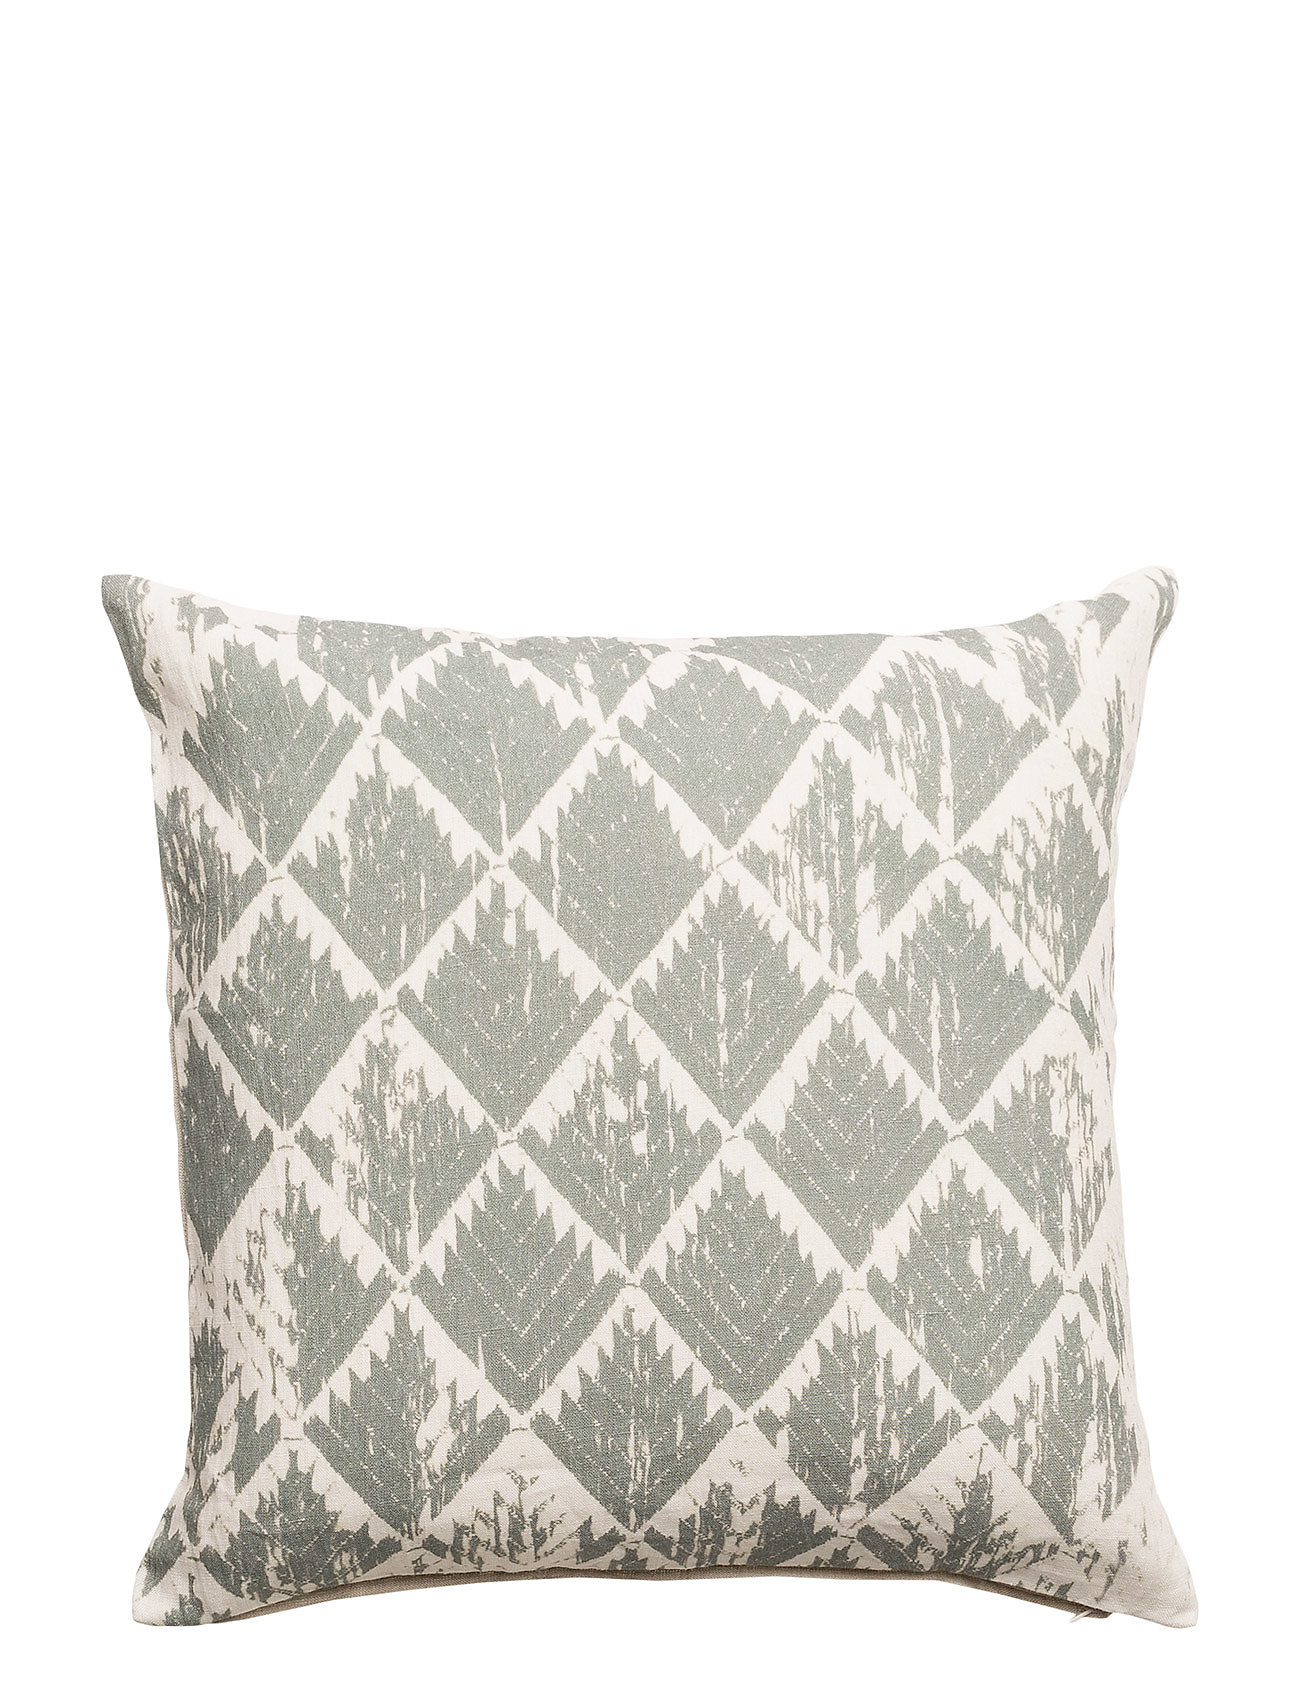 DAY Home Day Little Ikat, Cushion Cover - GREEN/DUSTY PINK